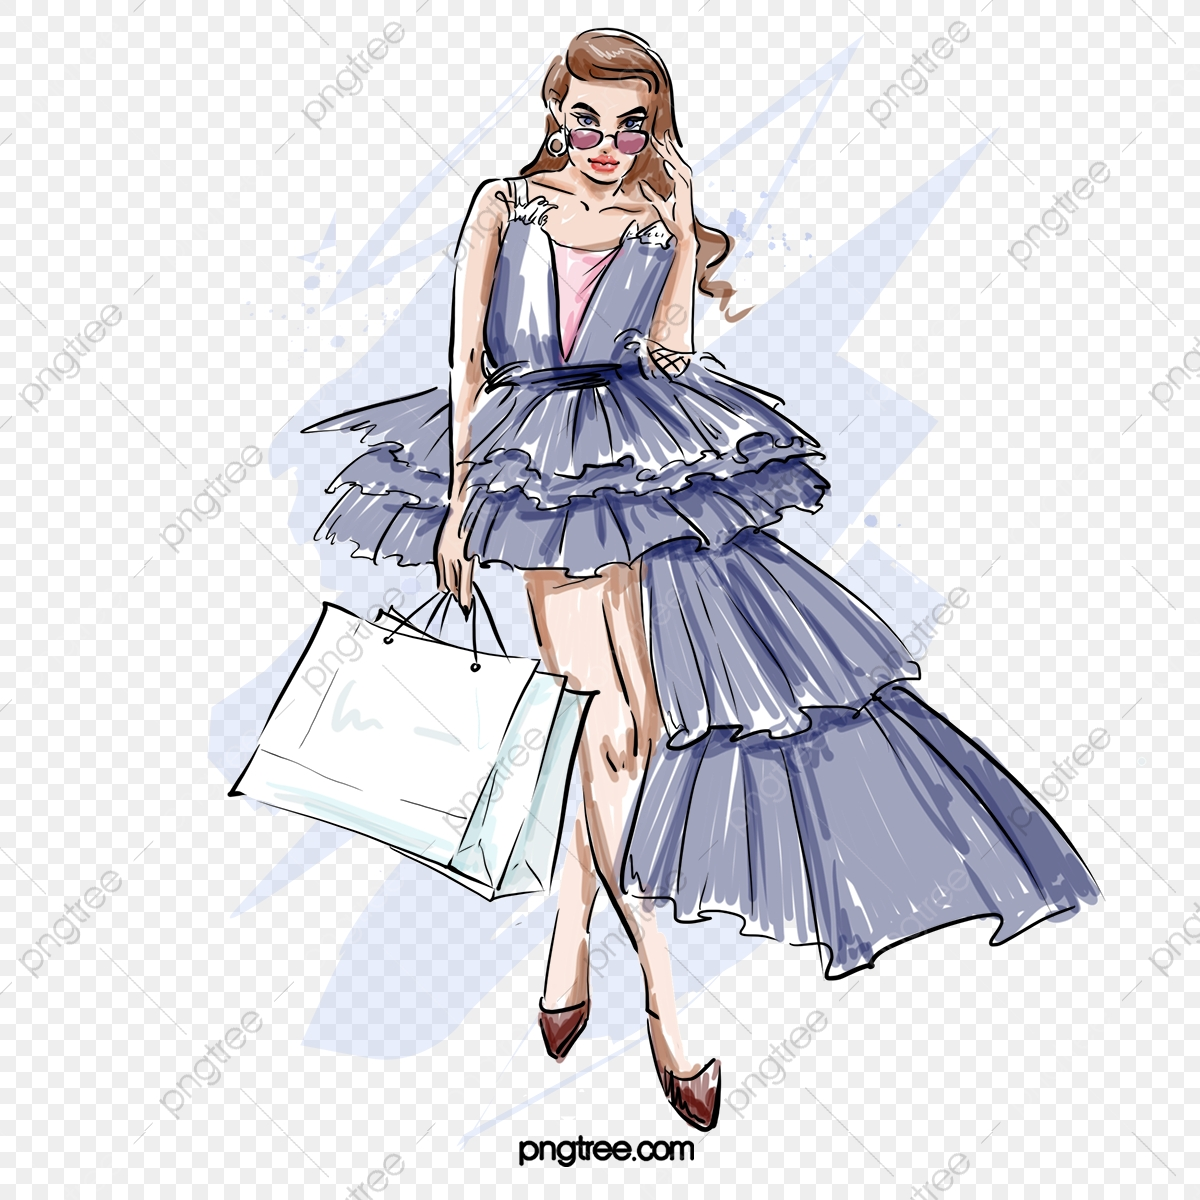 Evening Dress Fashion Fashion Shopping Cover Girl Hand Drawn Elements Latest Fashion Fashion Girl Png Transparent Clipart Image And Psd File For Free Download